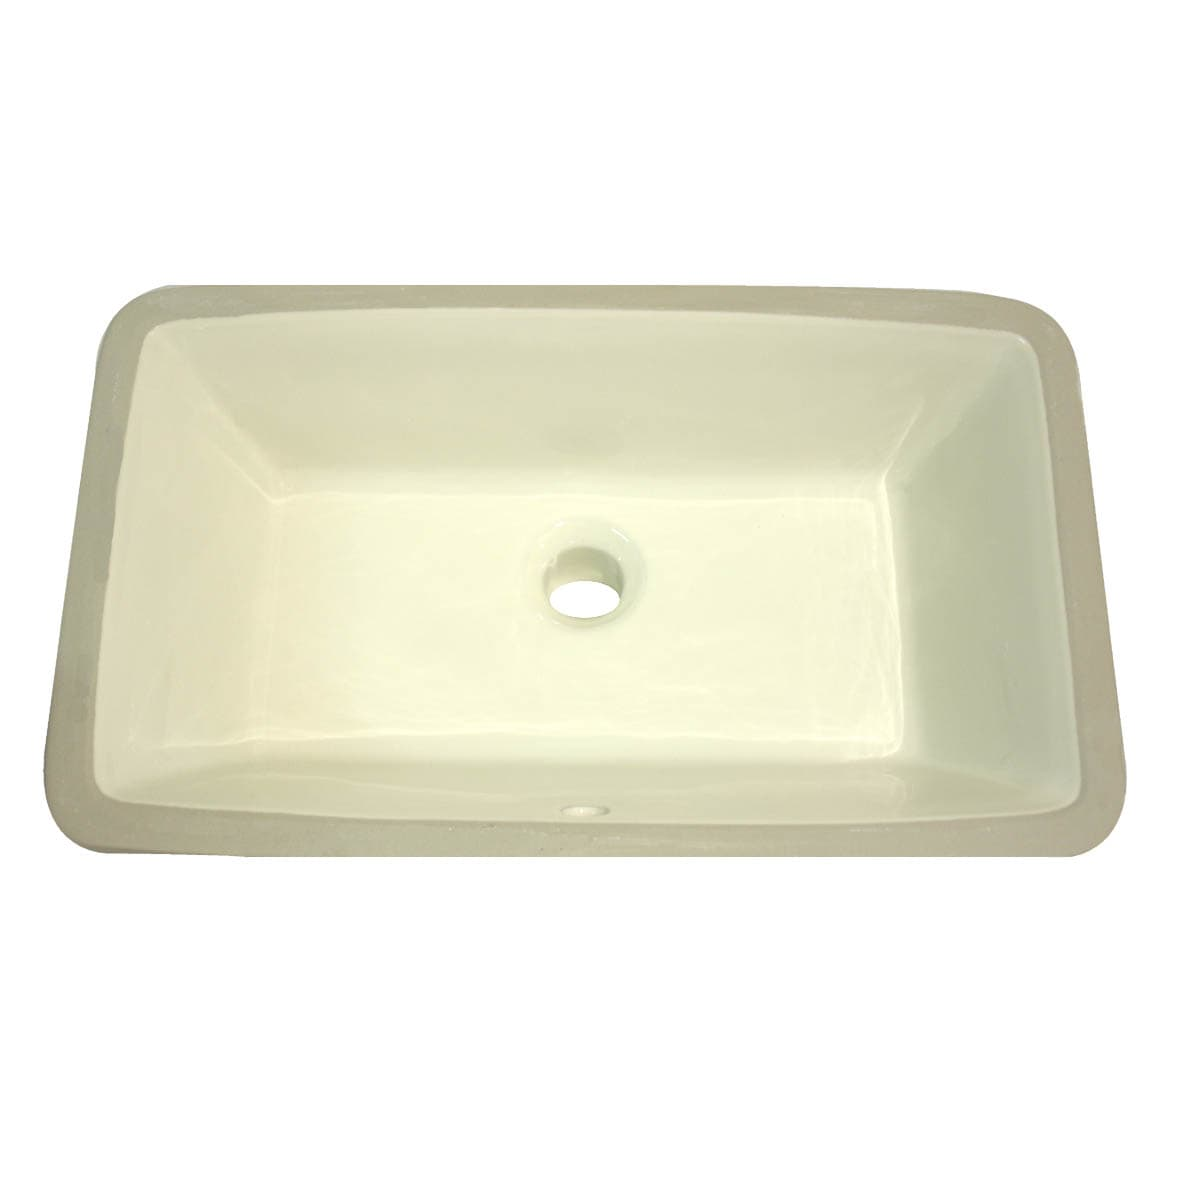 Highpoint Collection Bisque Ceramic Undermount Vanity Sink (Pack of 4)